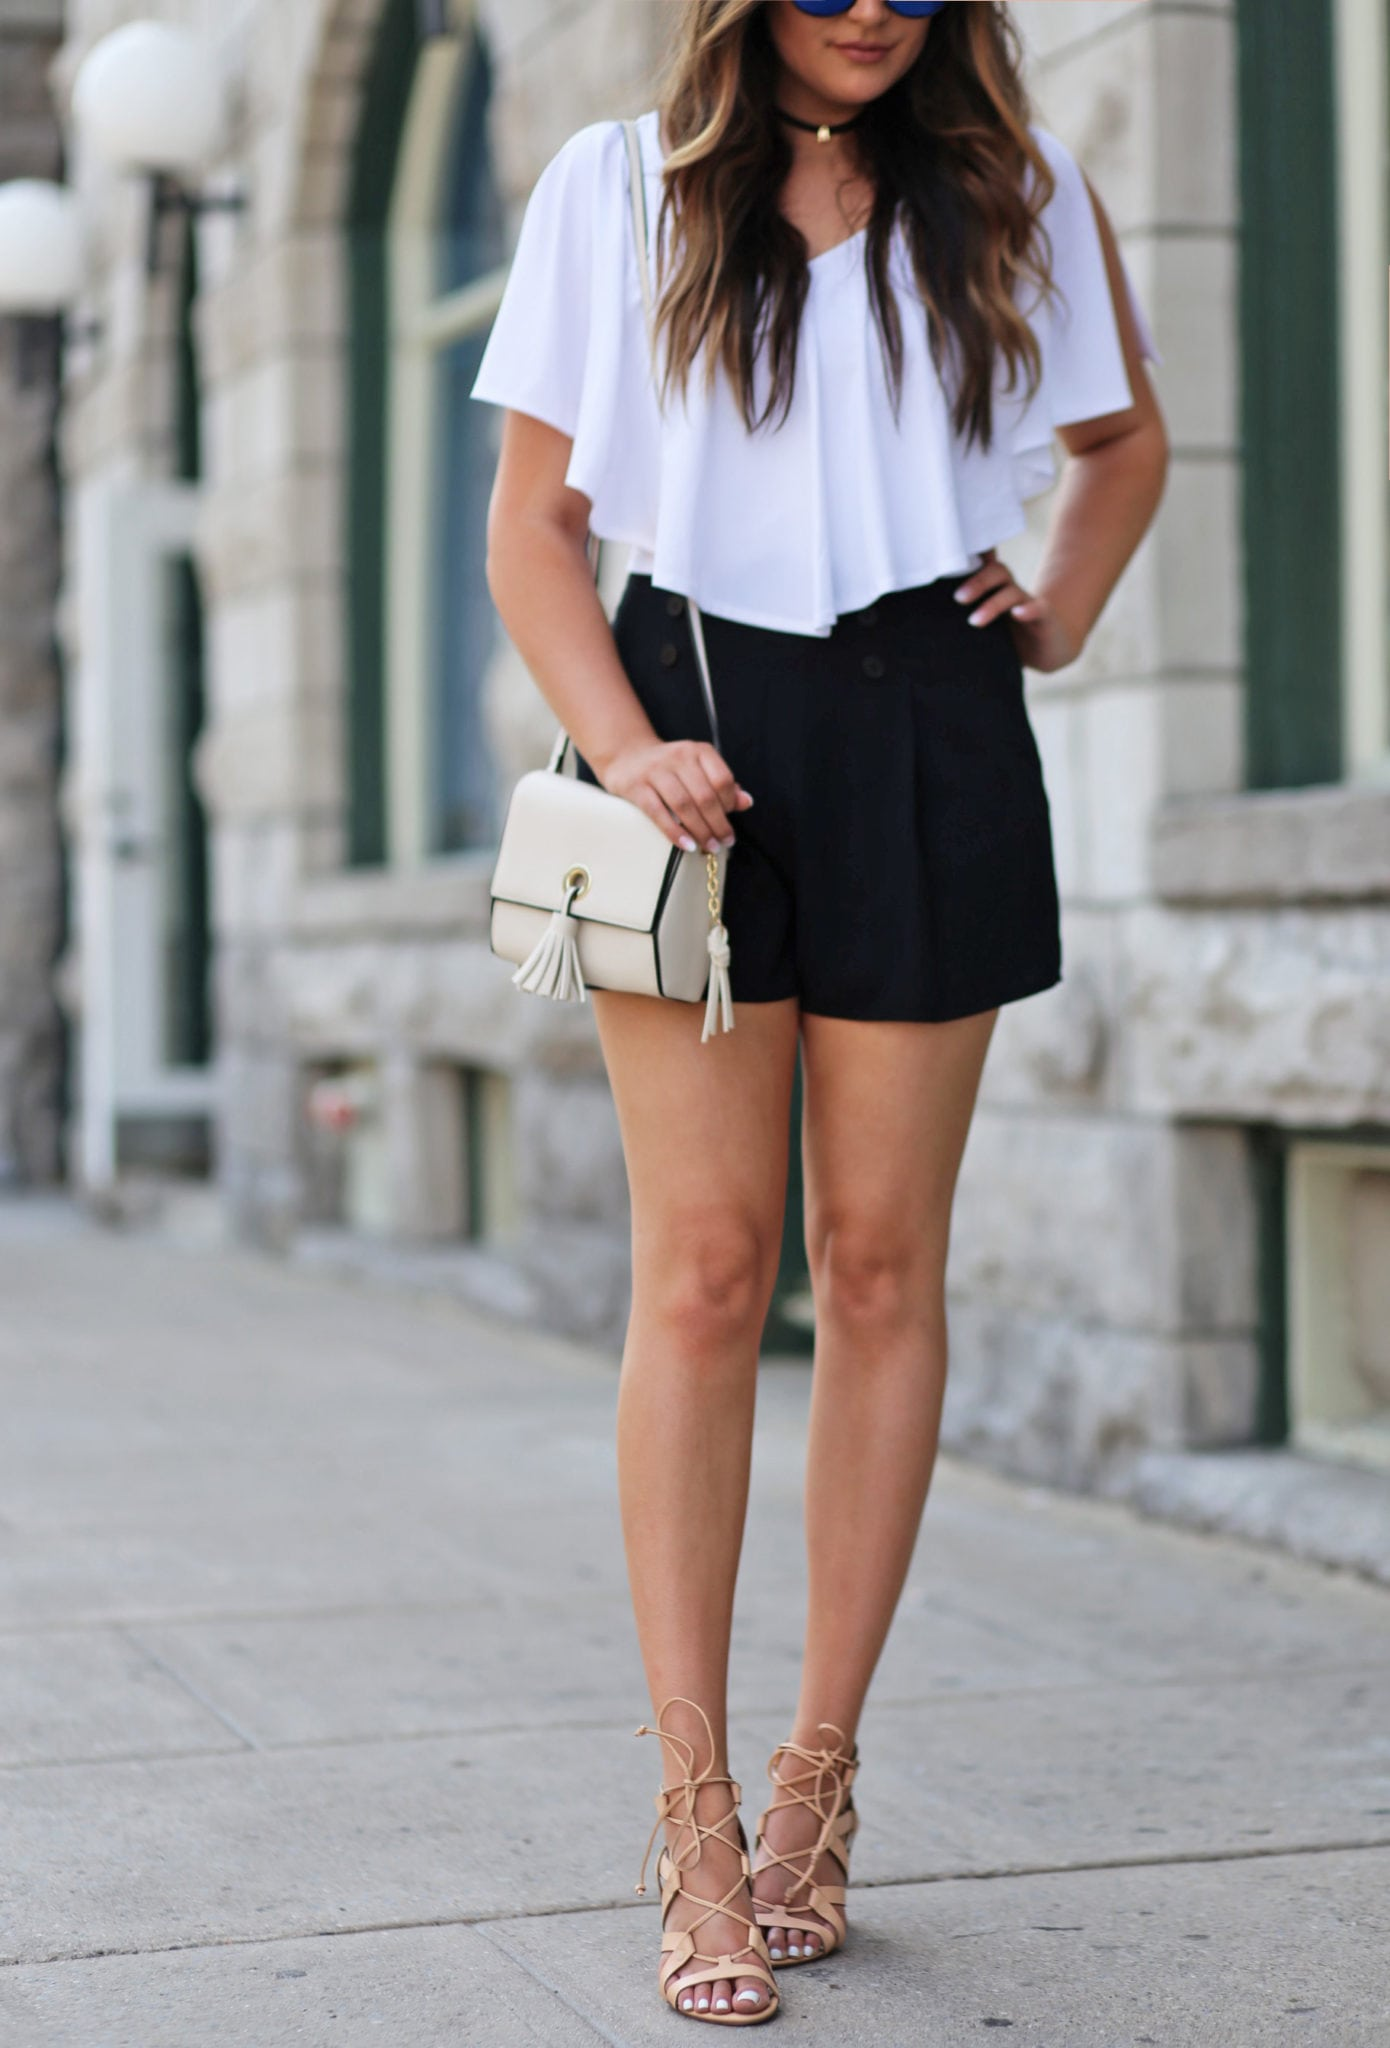 Mash Elle high waited shorts black and white outfit tan high heels